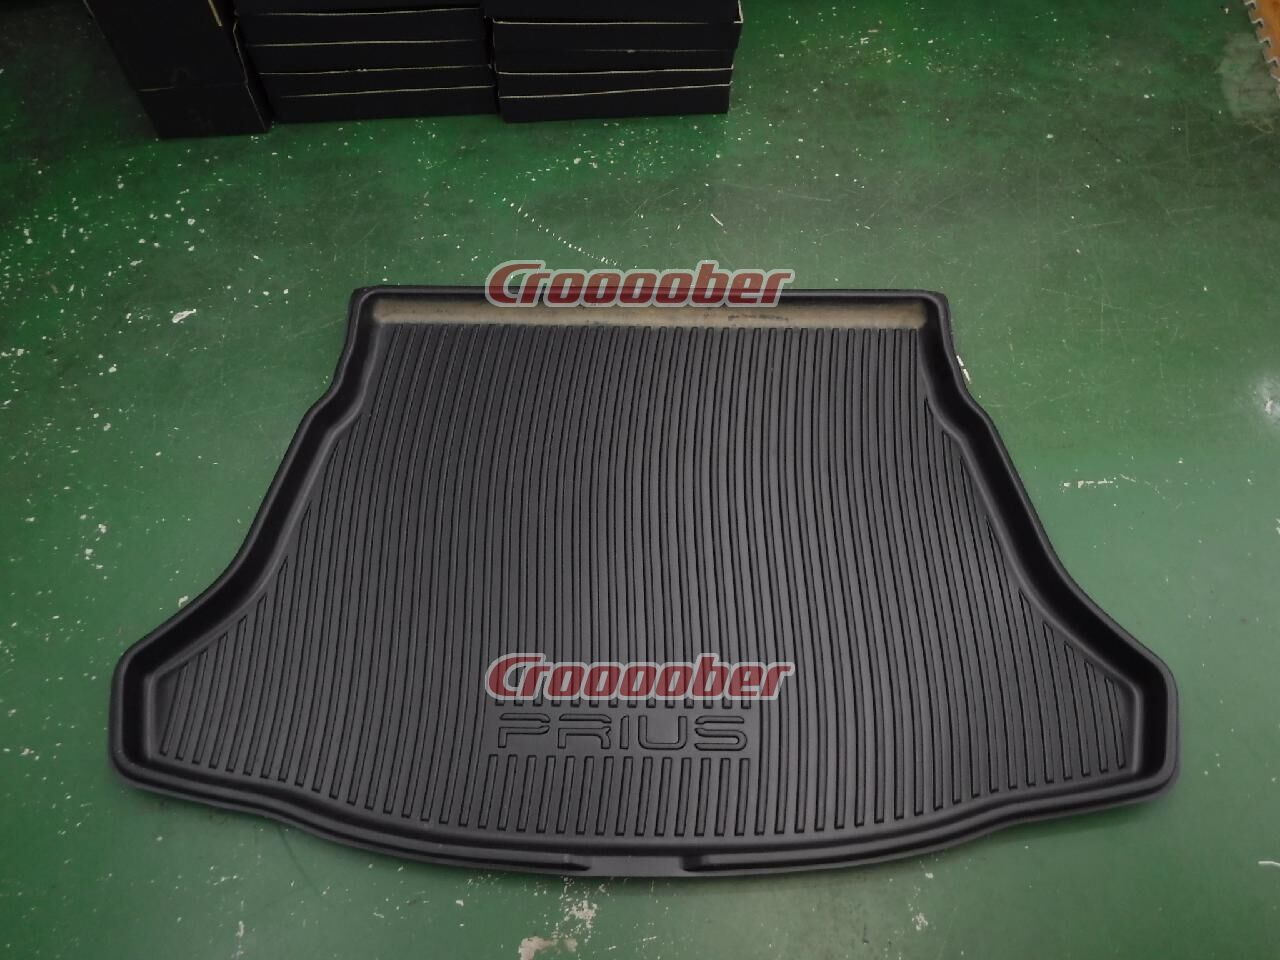 Toyota Genuine Luggage Tray 50 Series Prius